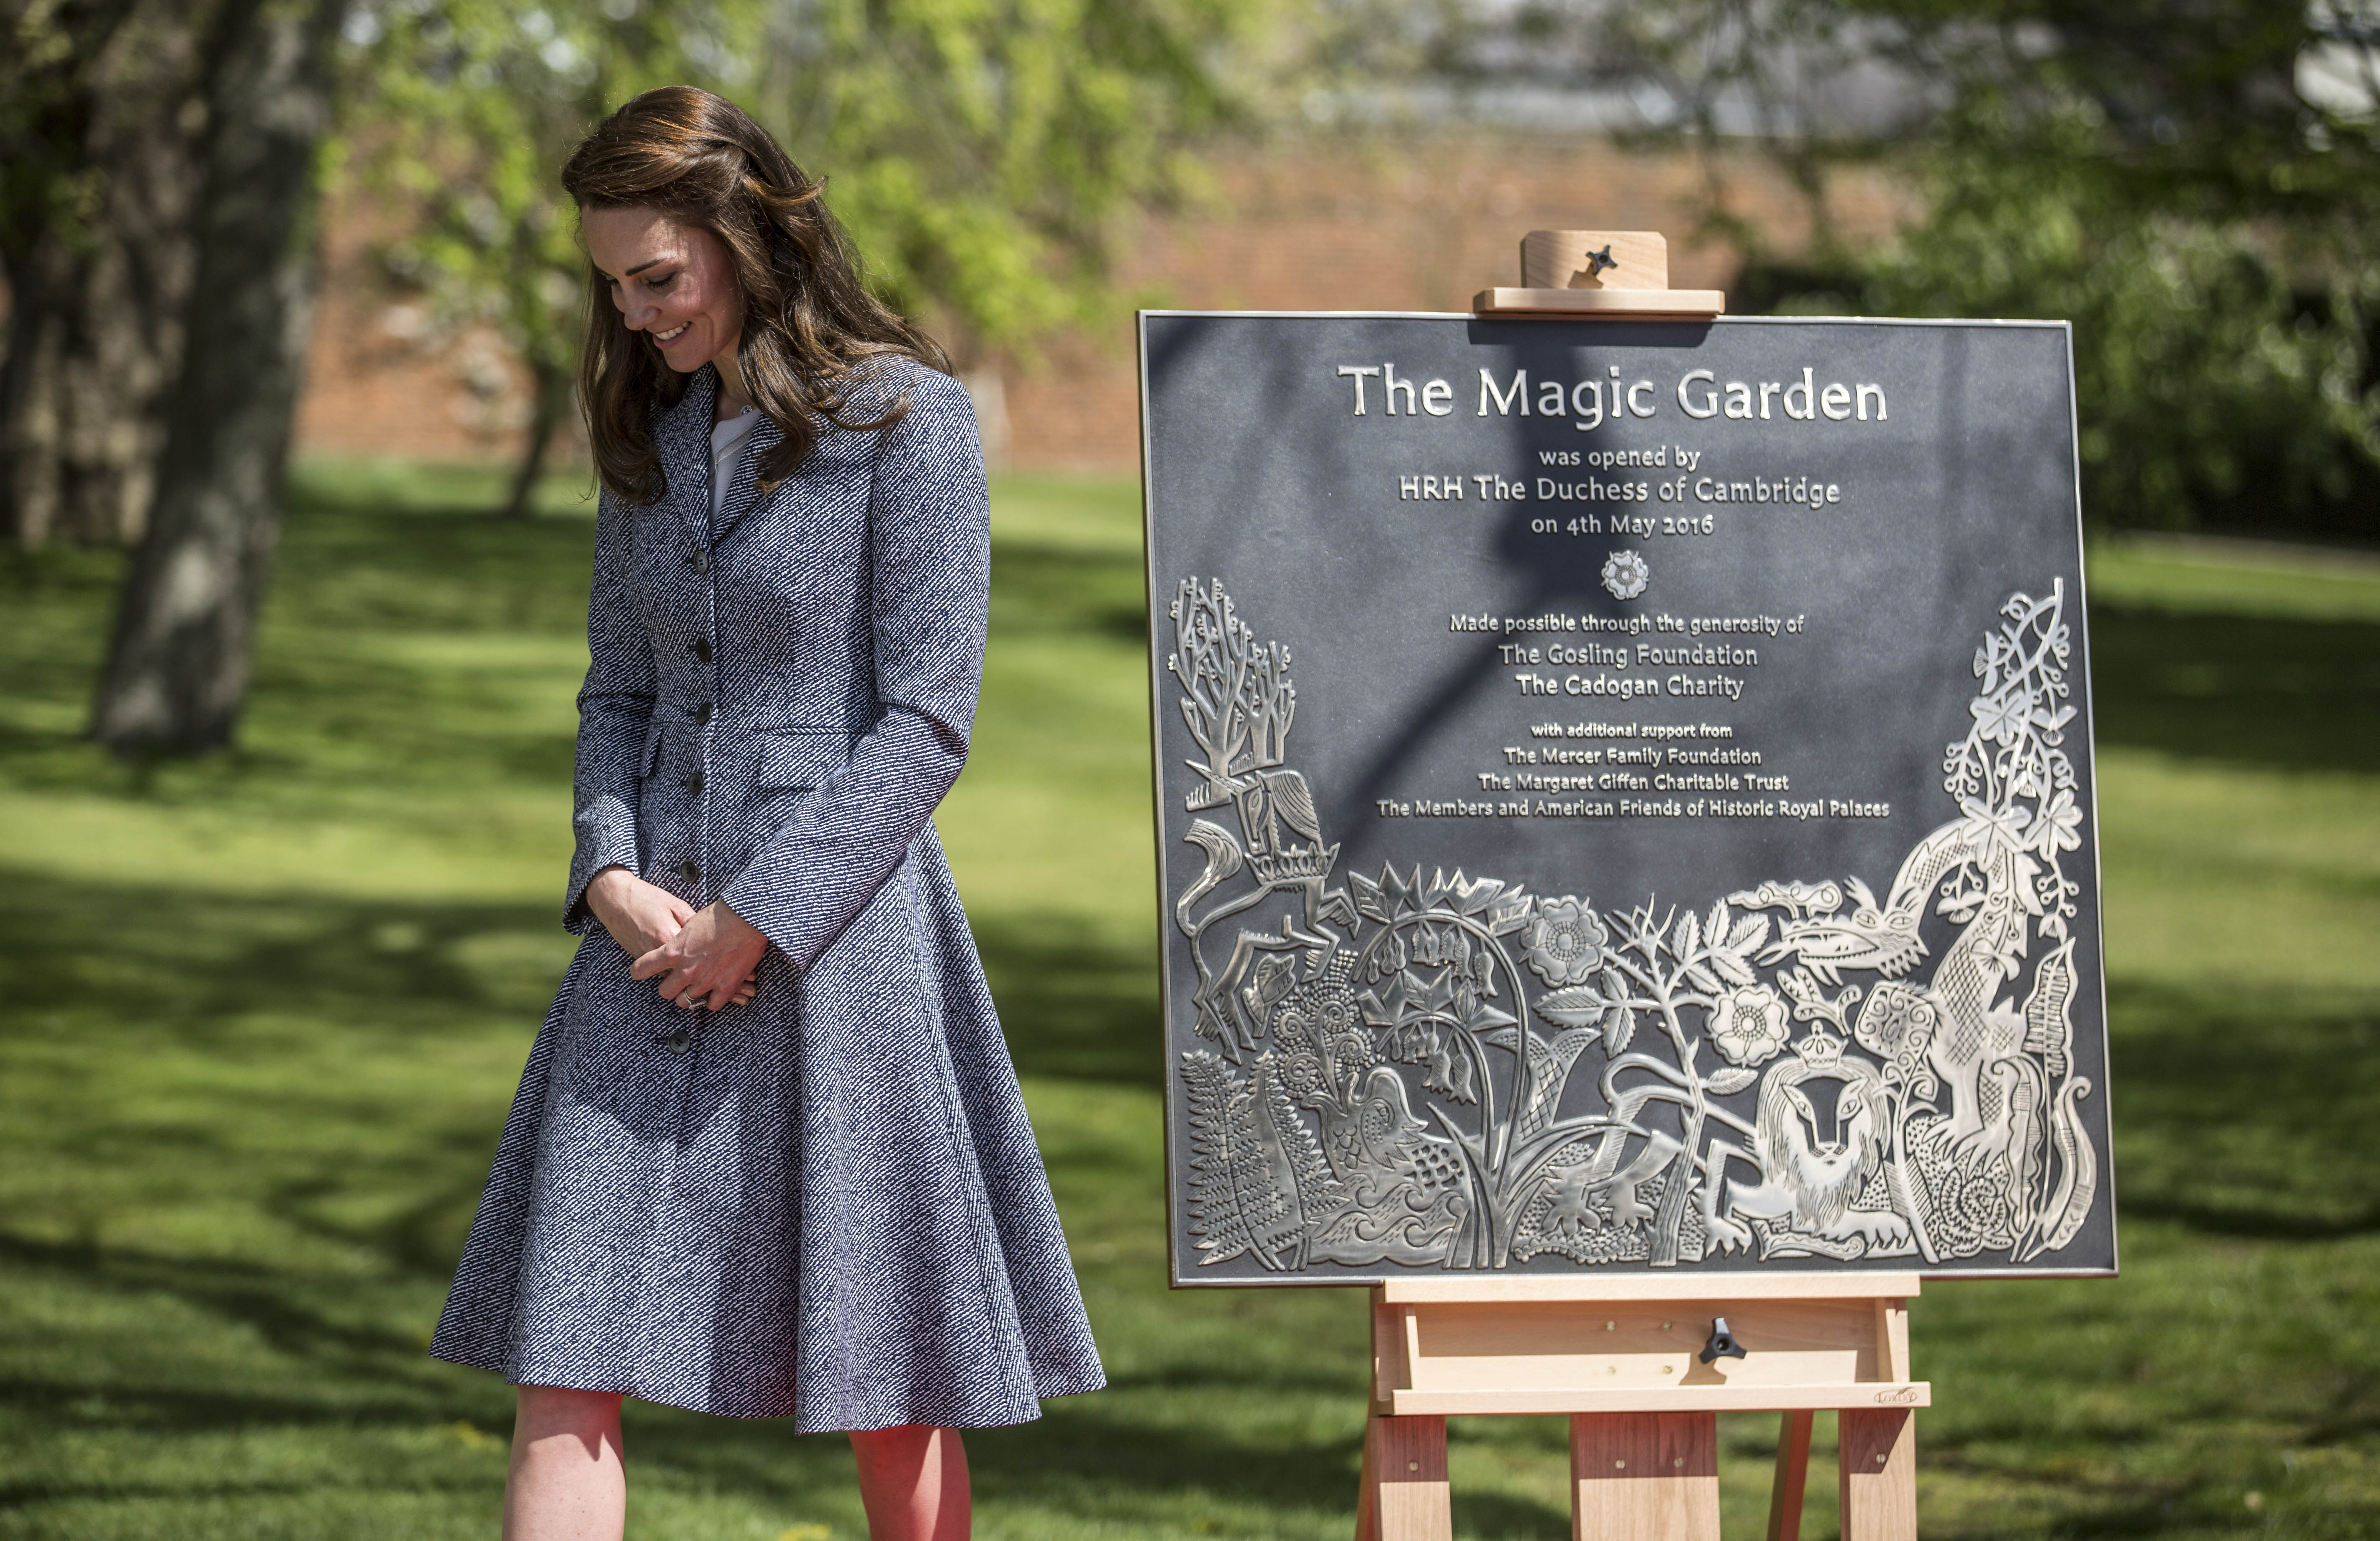 LONDON, ENGLAND - MAY 04: Catherine, Duchess of Cambridge stands with the plaque she unveiled as she officially opens The Magic Garden at Hampton Court Palace on May 4, 2016 in London, England.